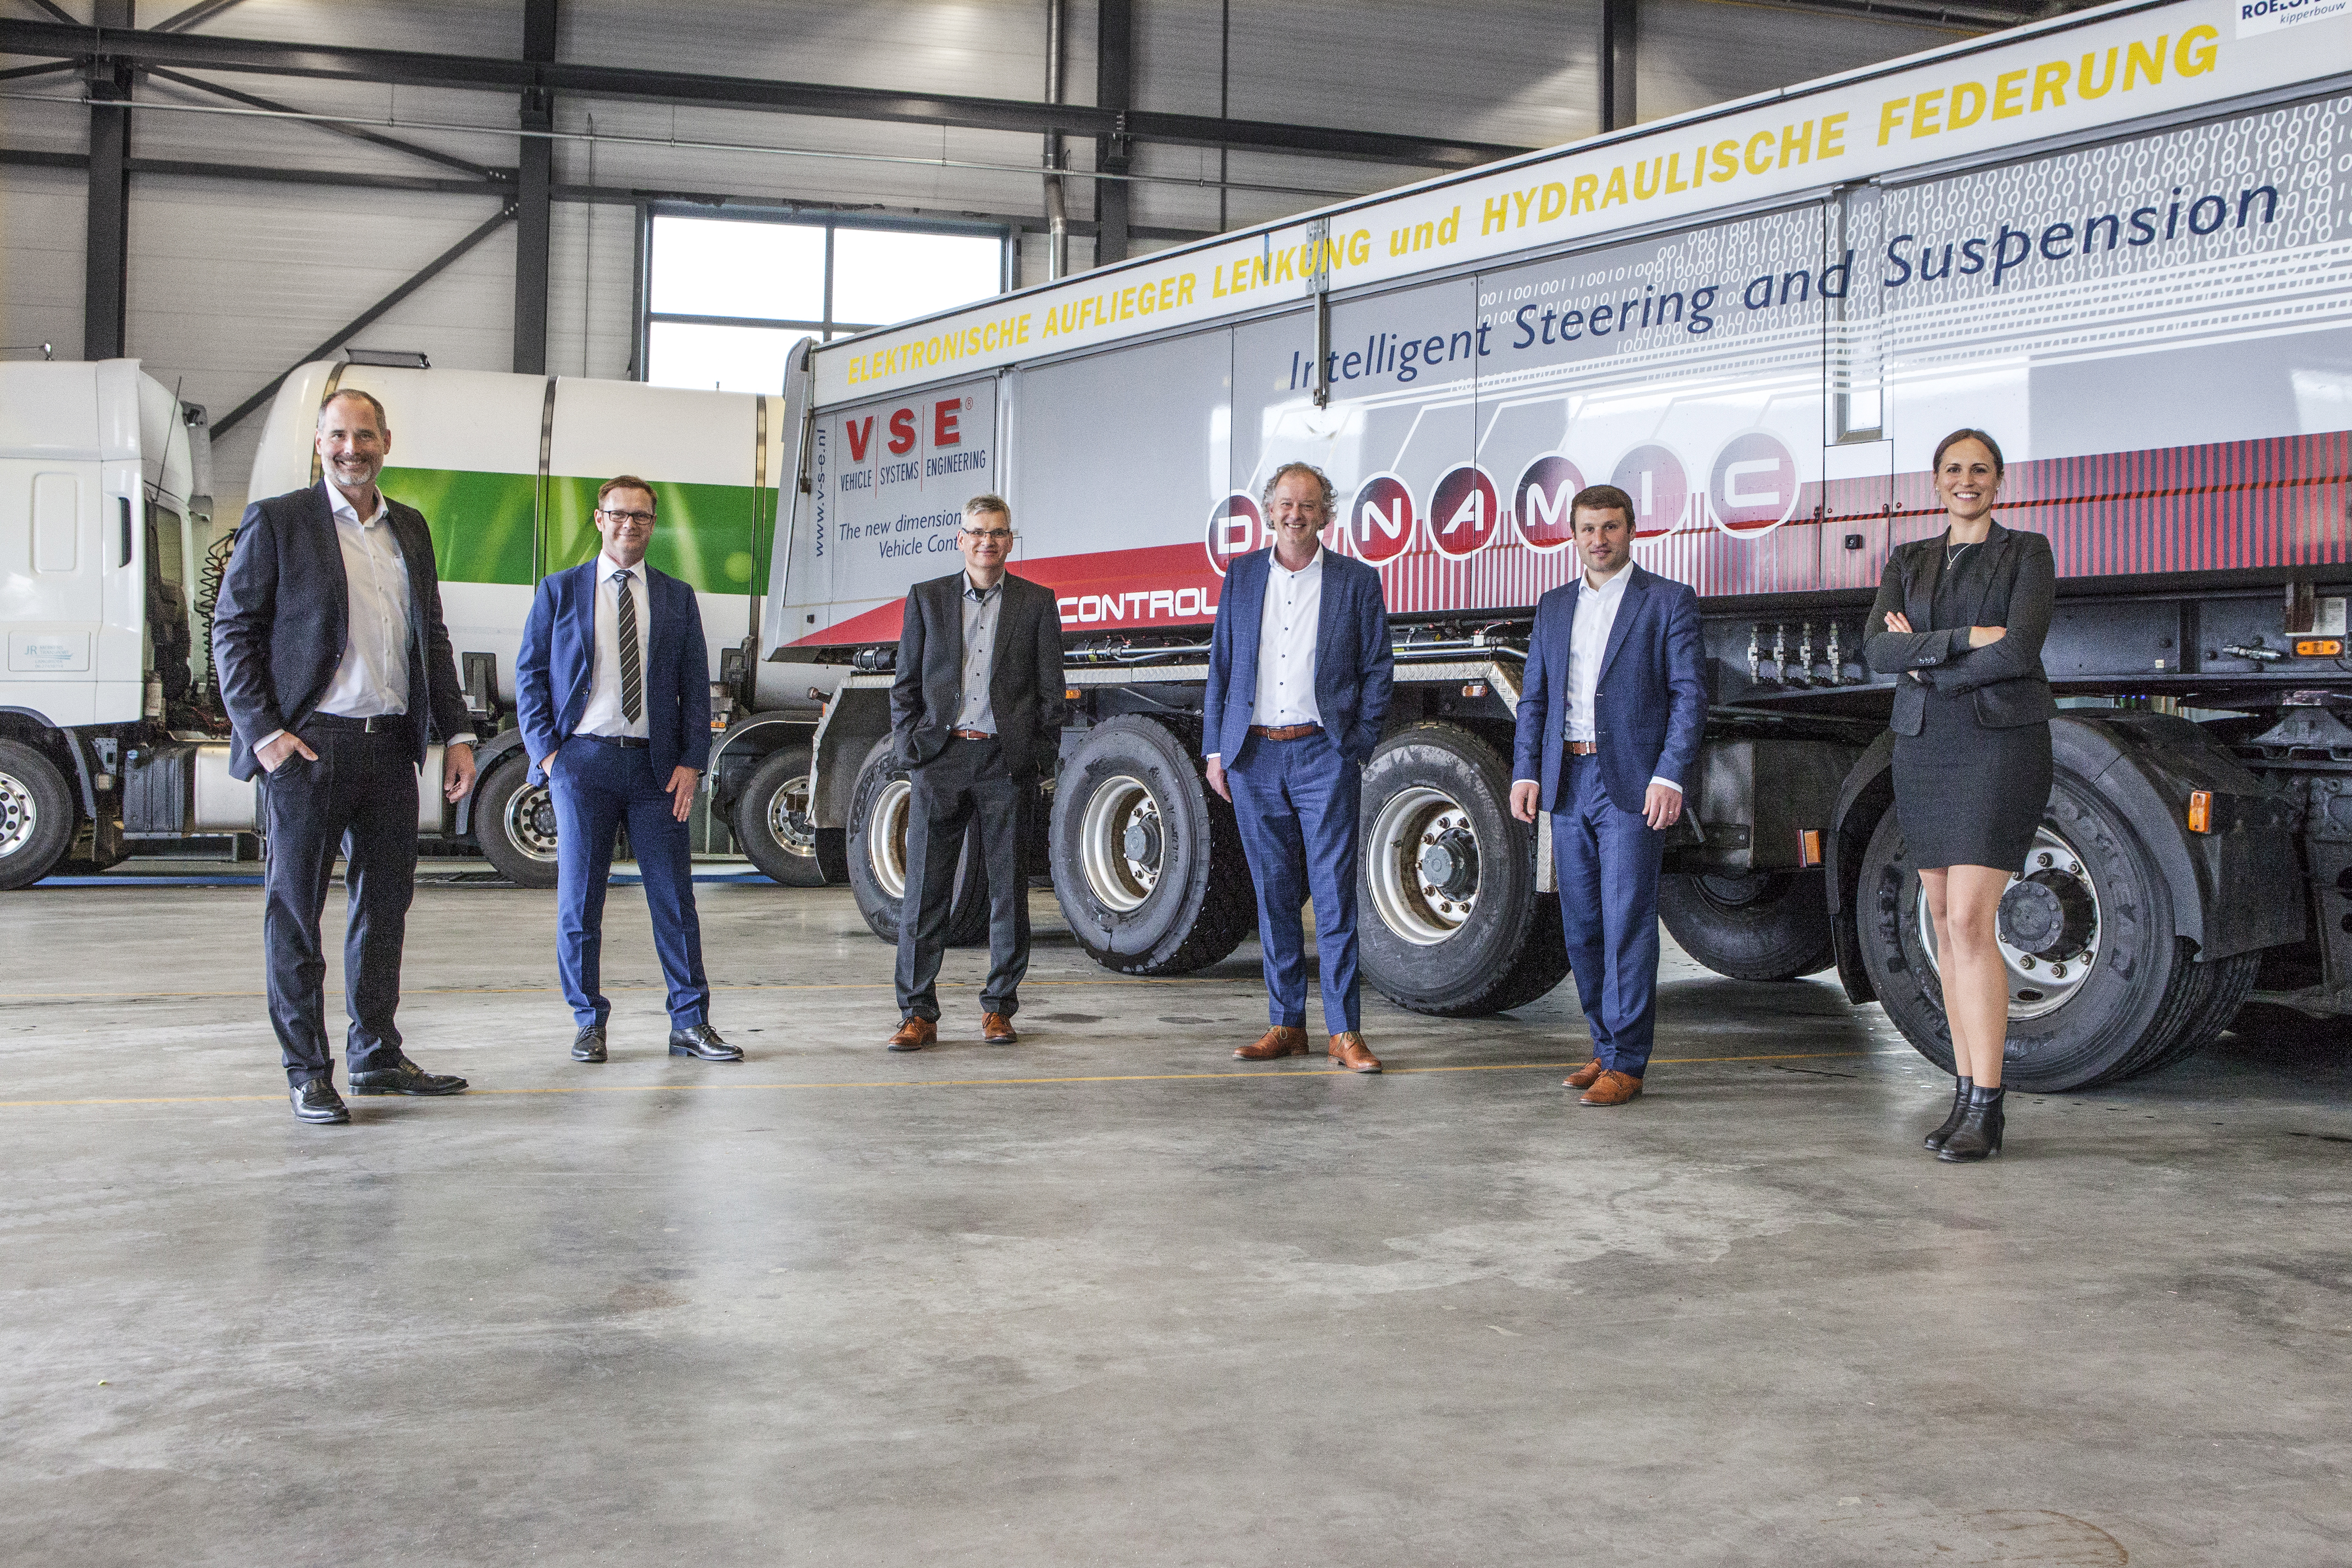 VSE becomes part of the HÜBNER Group